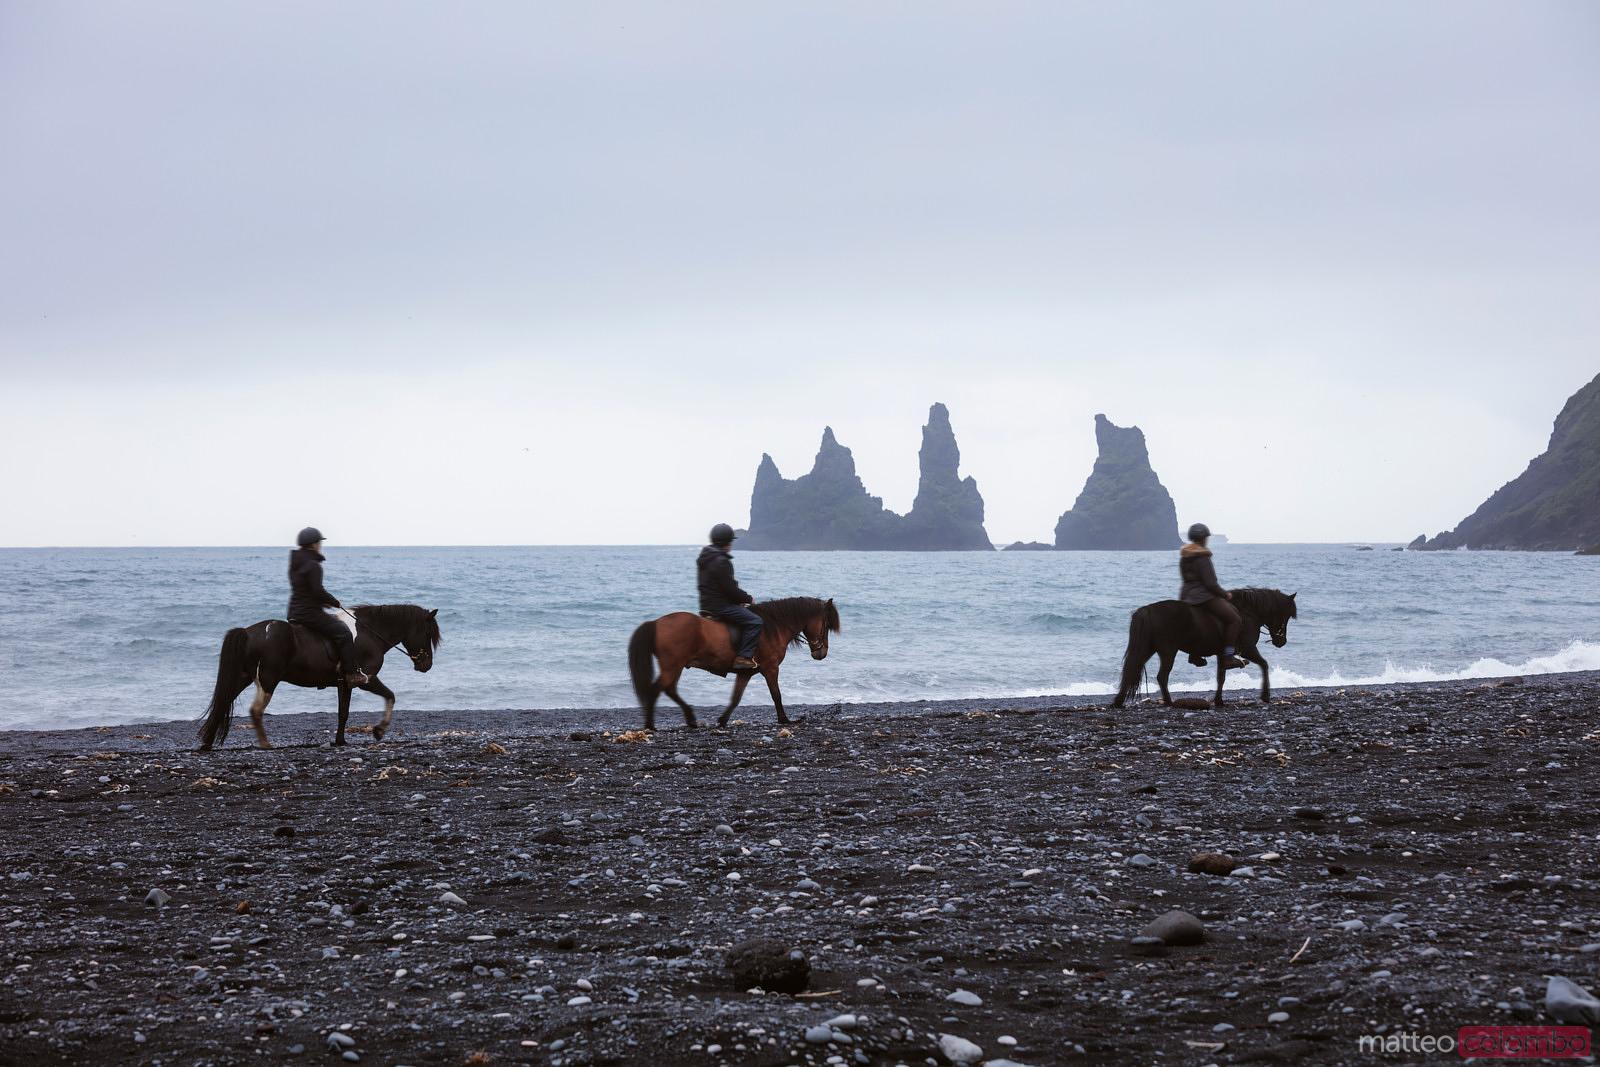 Tourists horseriding on black sand beach, Vik, Iceland